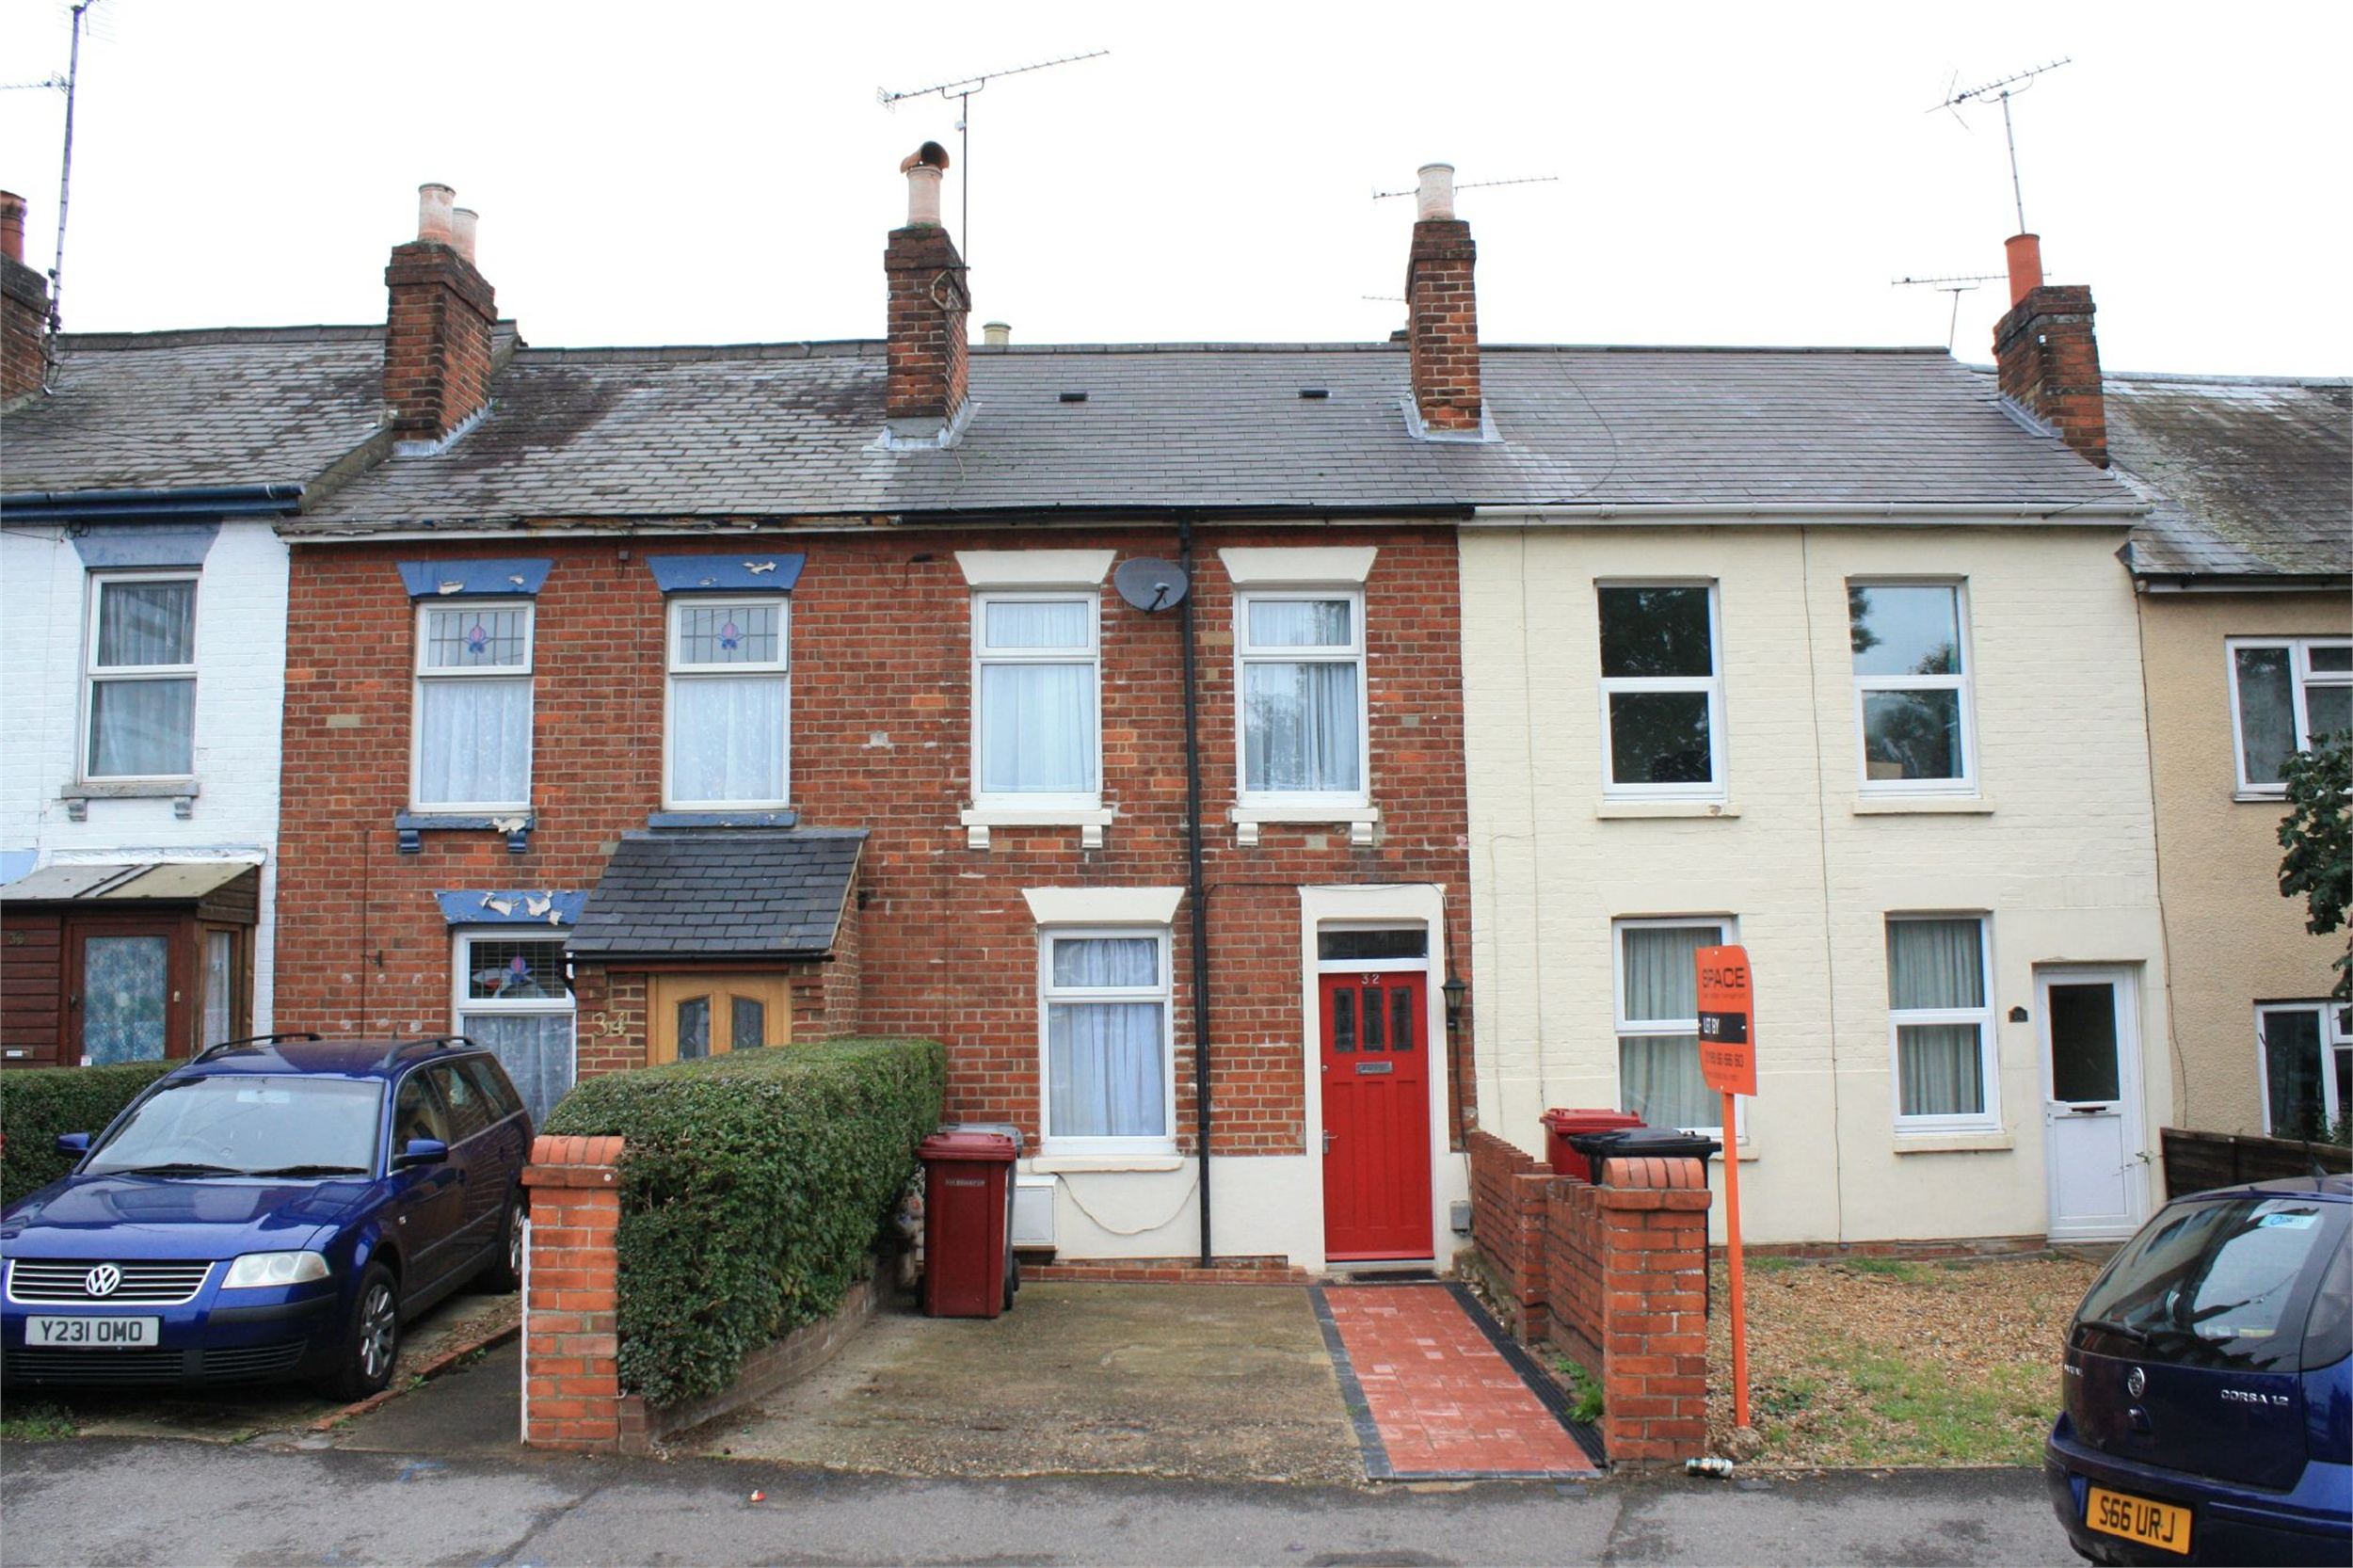 Parkers reading 2 bedroom house to rent in crescent road reading berkshire rg1 parkers for 3 bedroom houses to buy in reading